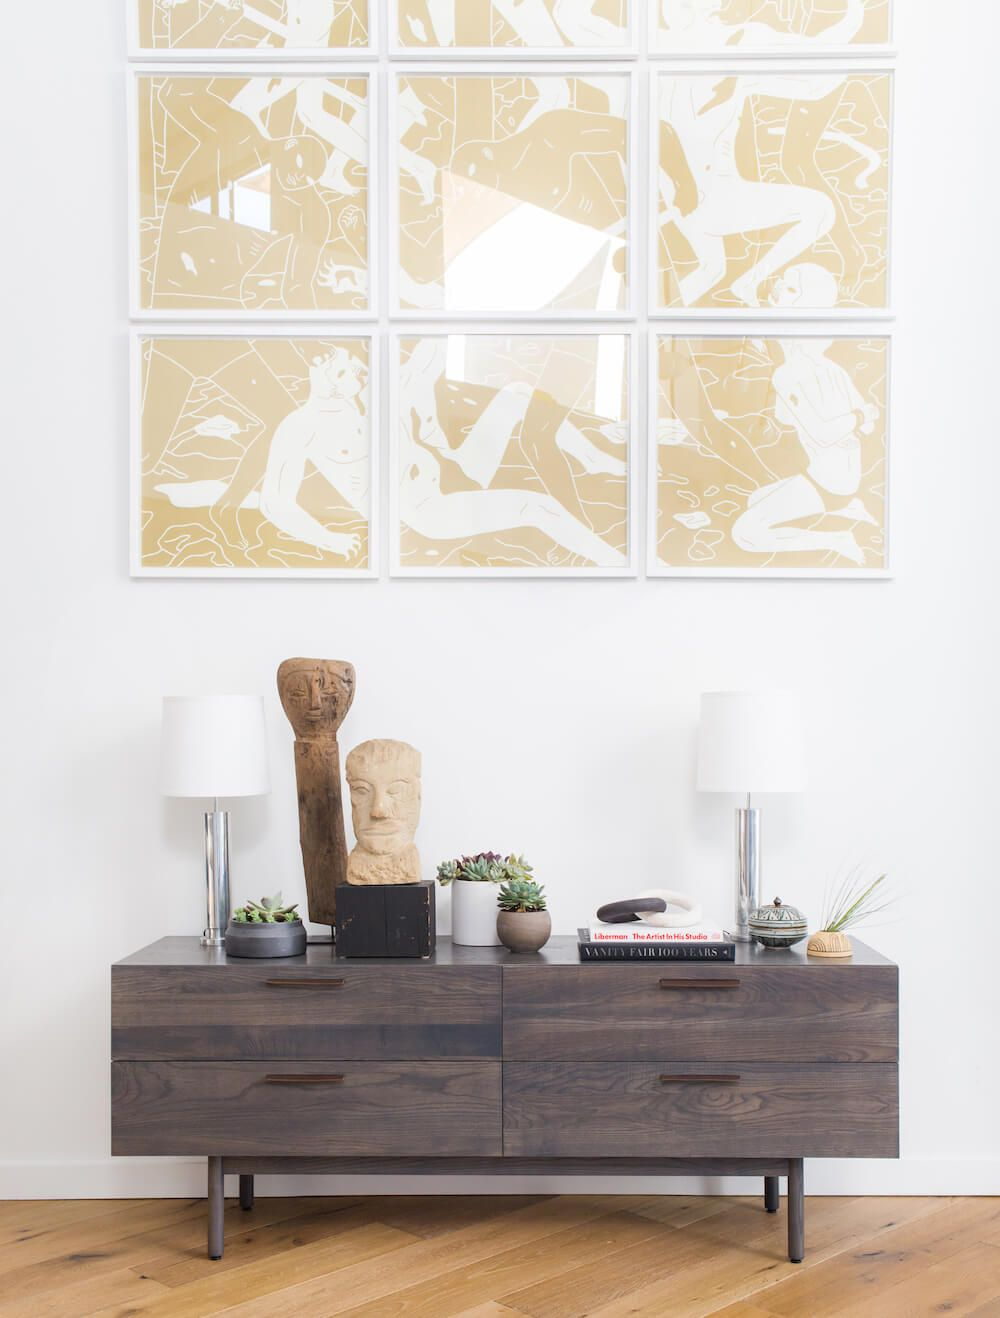 Orcondo: Living & Dining Room | Credenza, Design projects and Modern